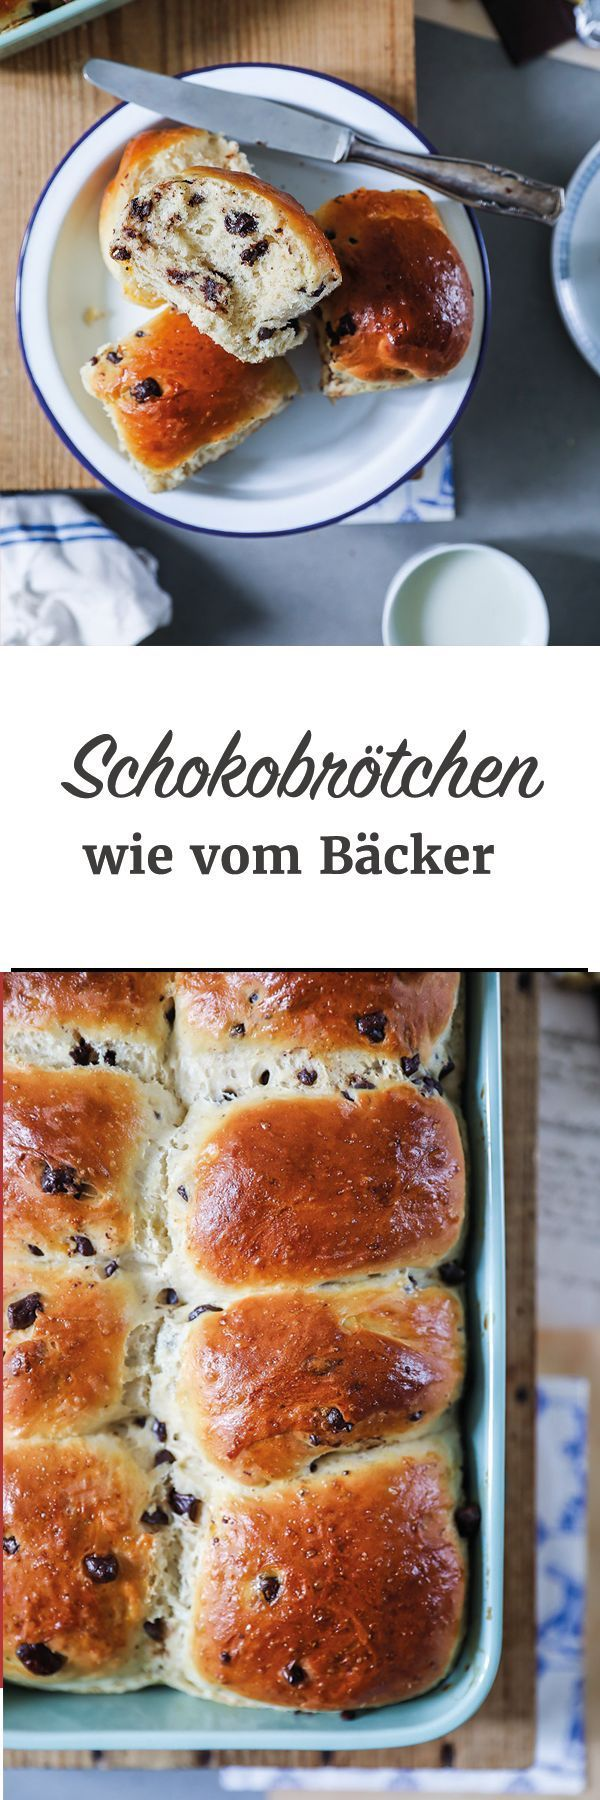 Make recipe chocolate rolls yourself   - *Leckere Brot & Brötchen Rezepte* -